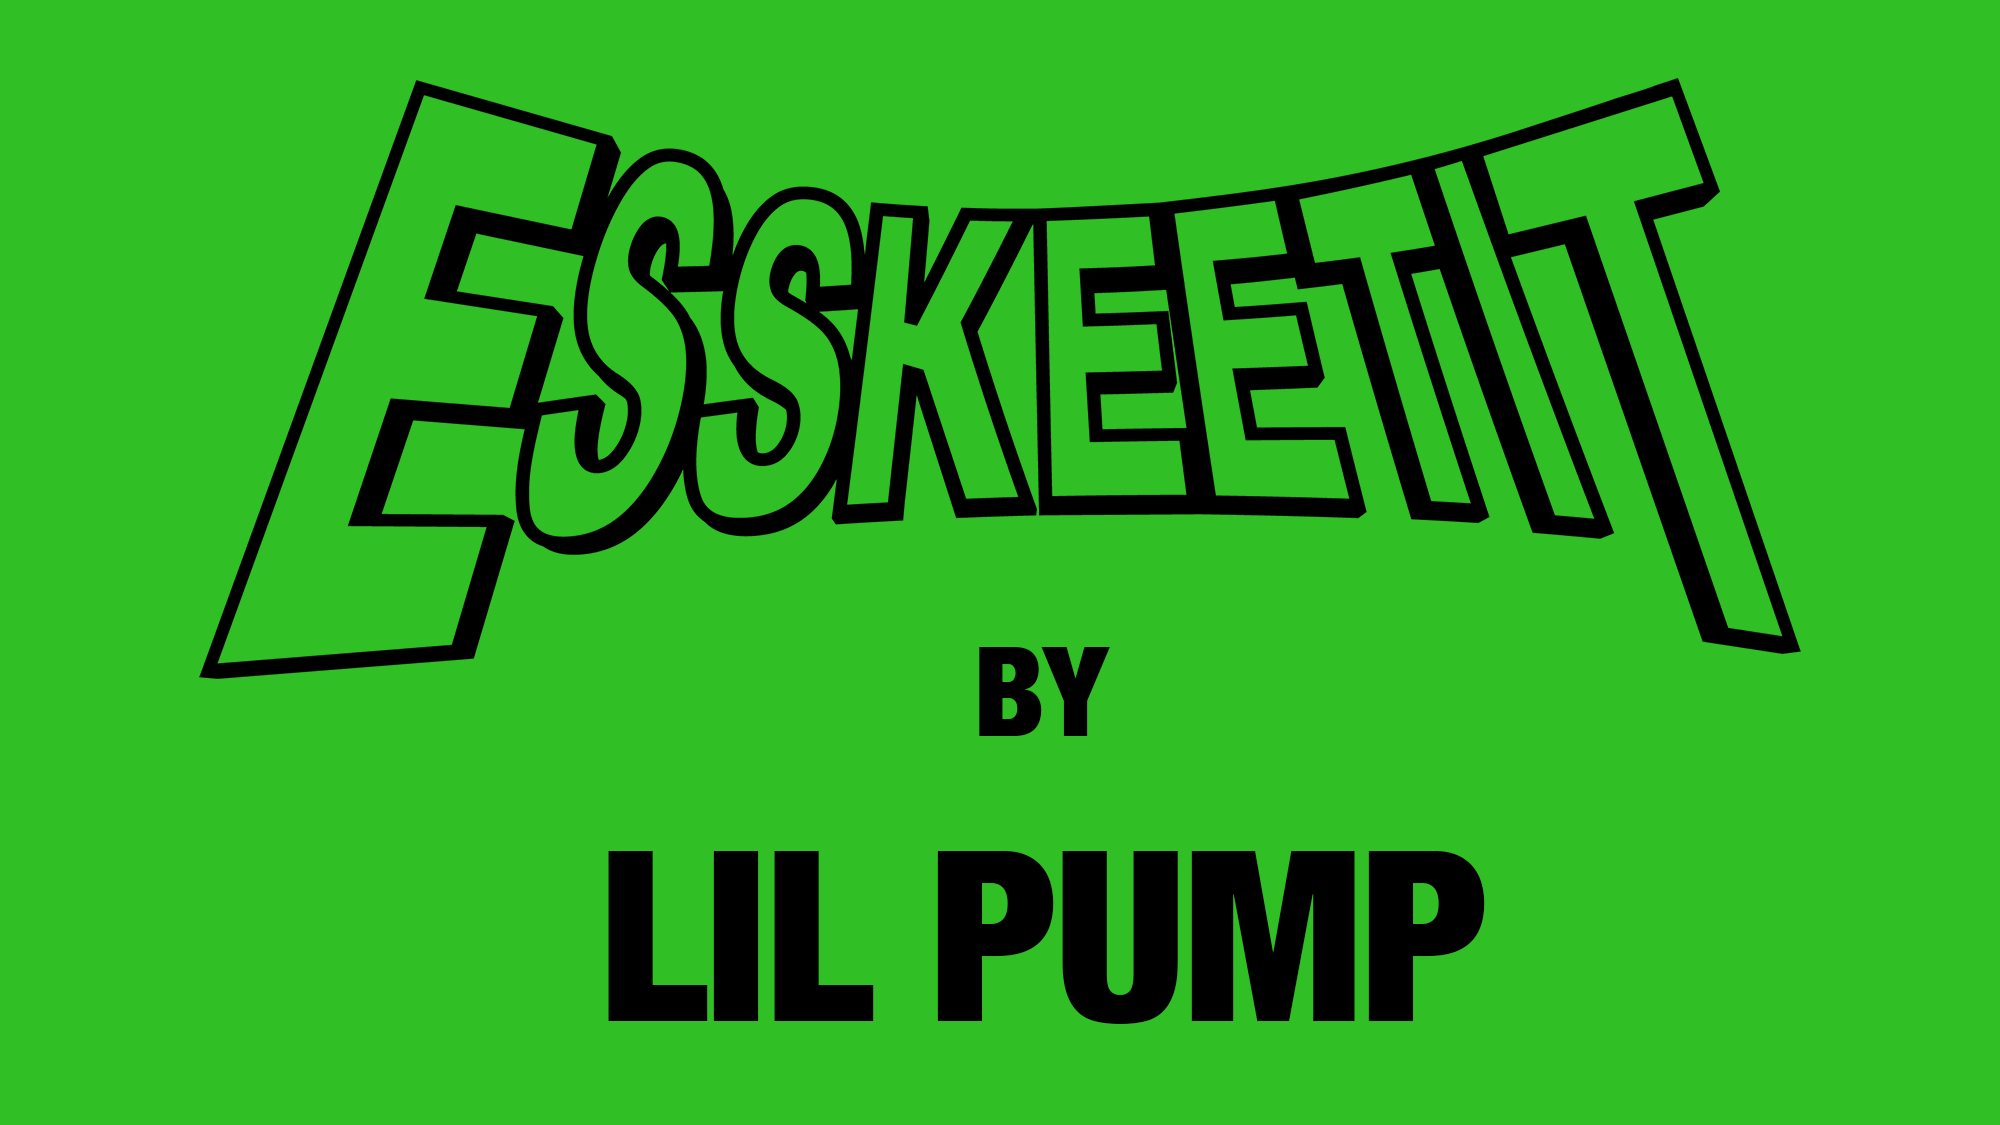 Esskeetit Clothing by Lil Pump